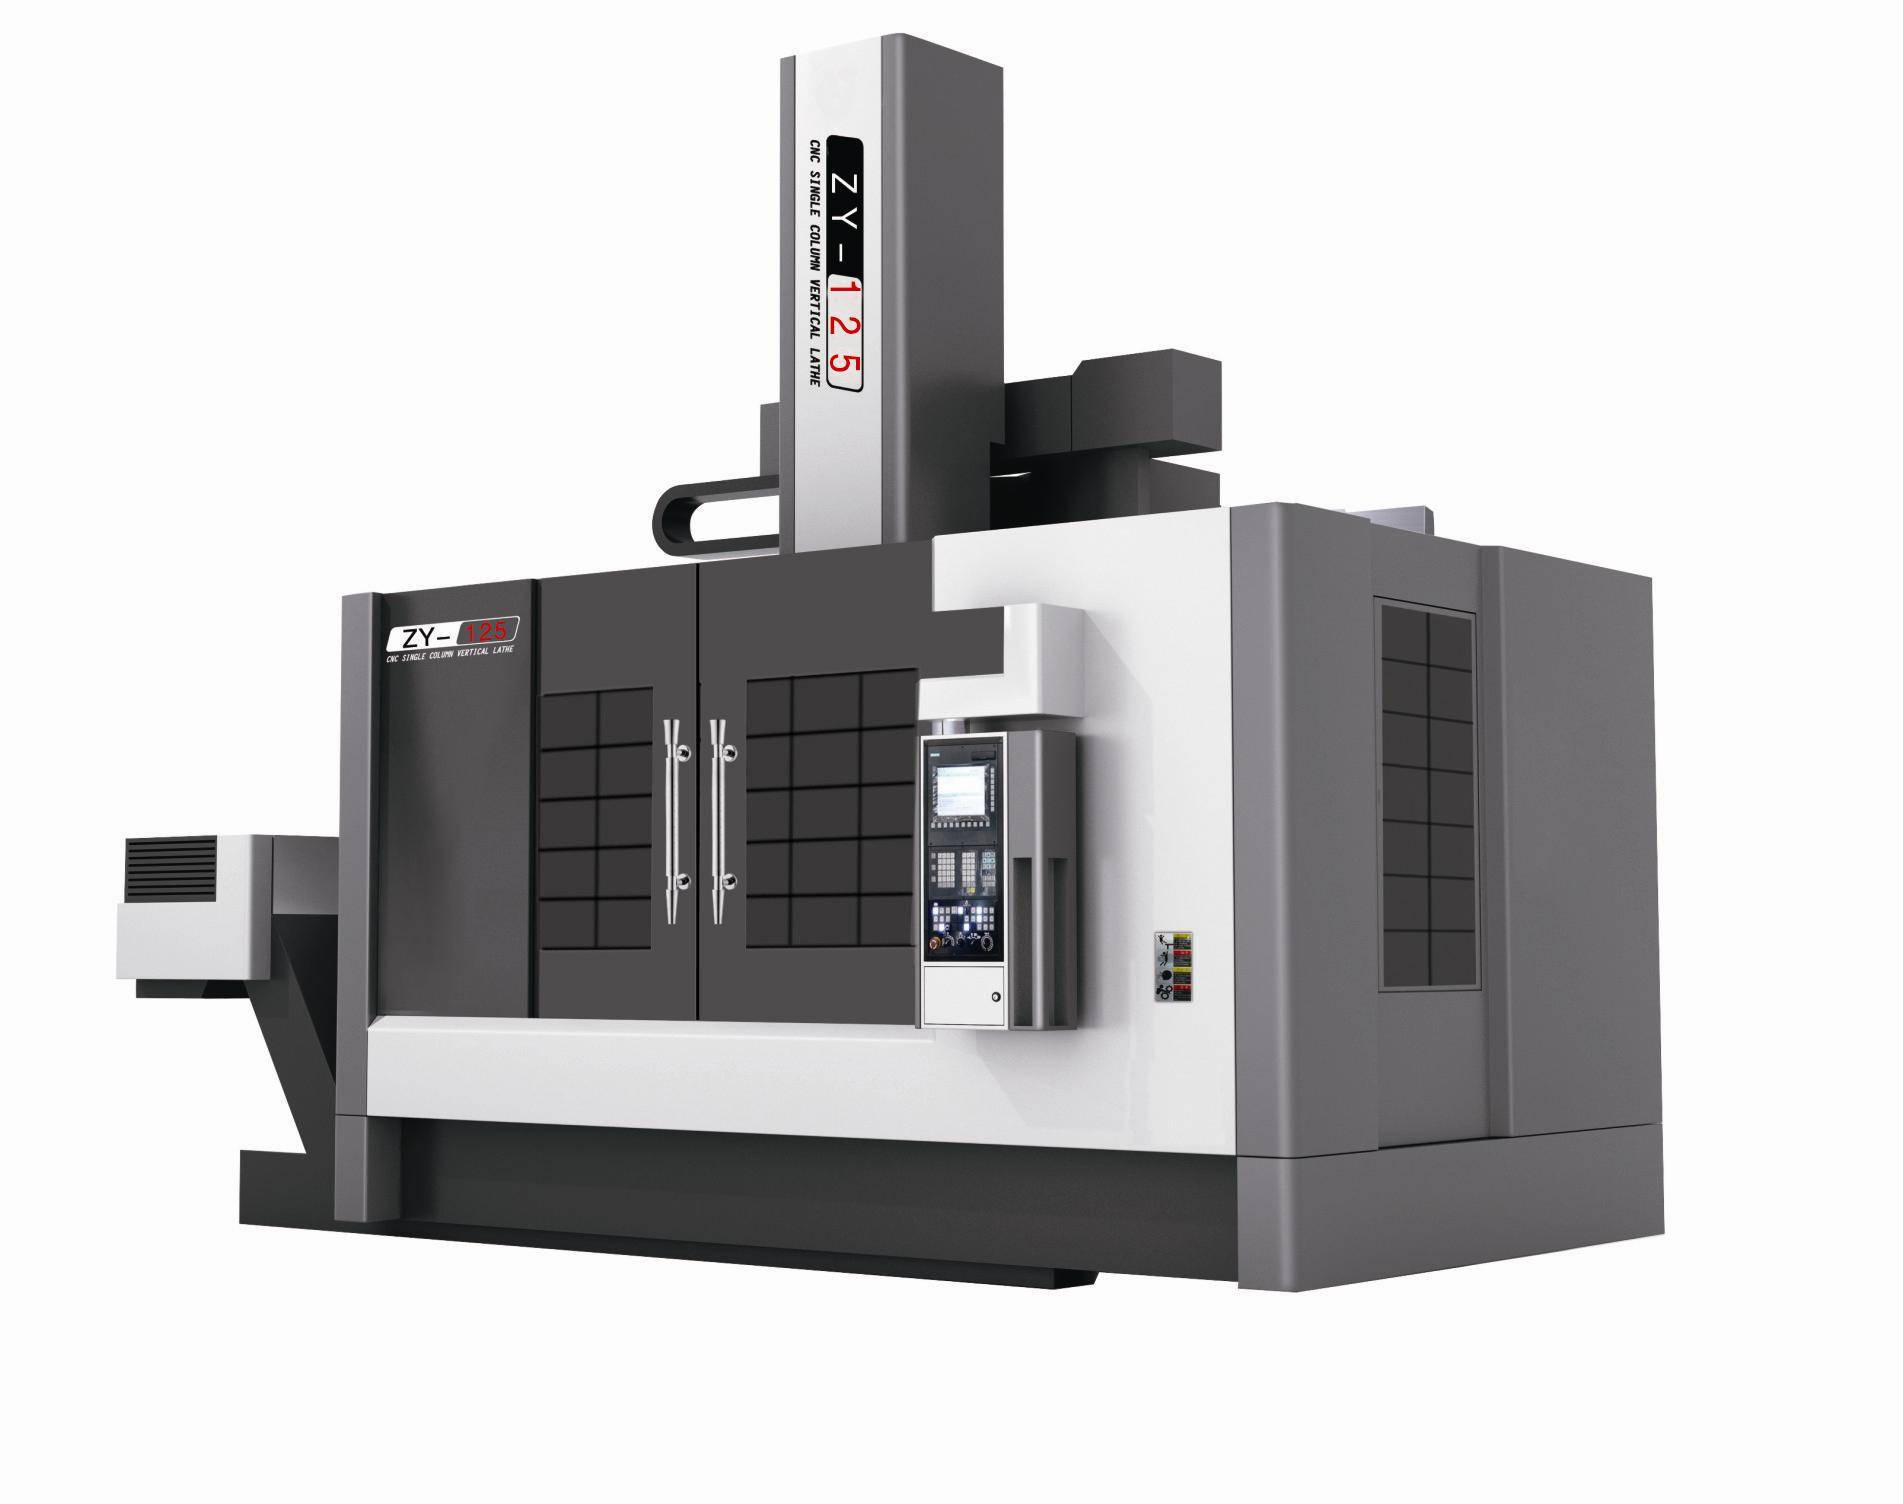 China Hot Sale Good Price High Reliable CNC Single Column High Speed Vertical Lathe Machine